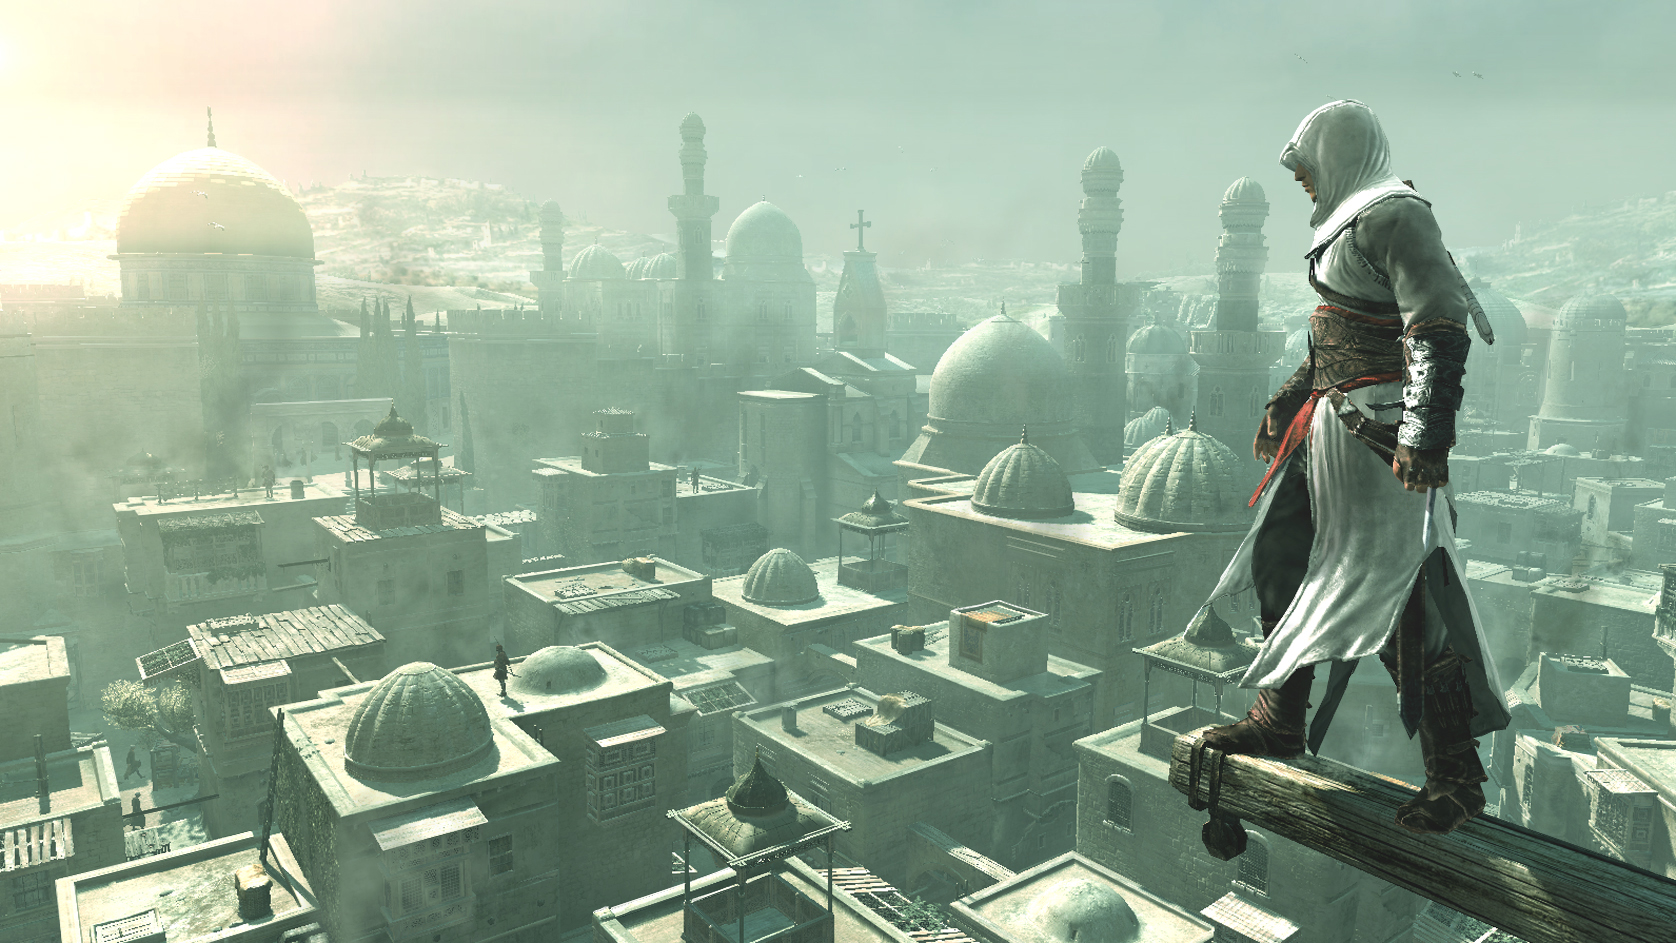 The original Assassin's Creed was an awkward, ambitious sign of things to come